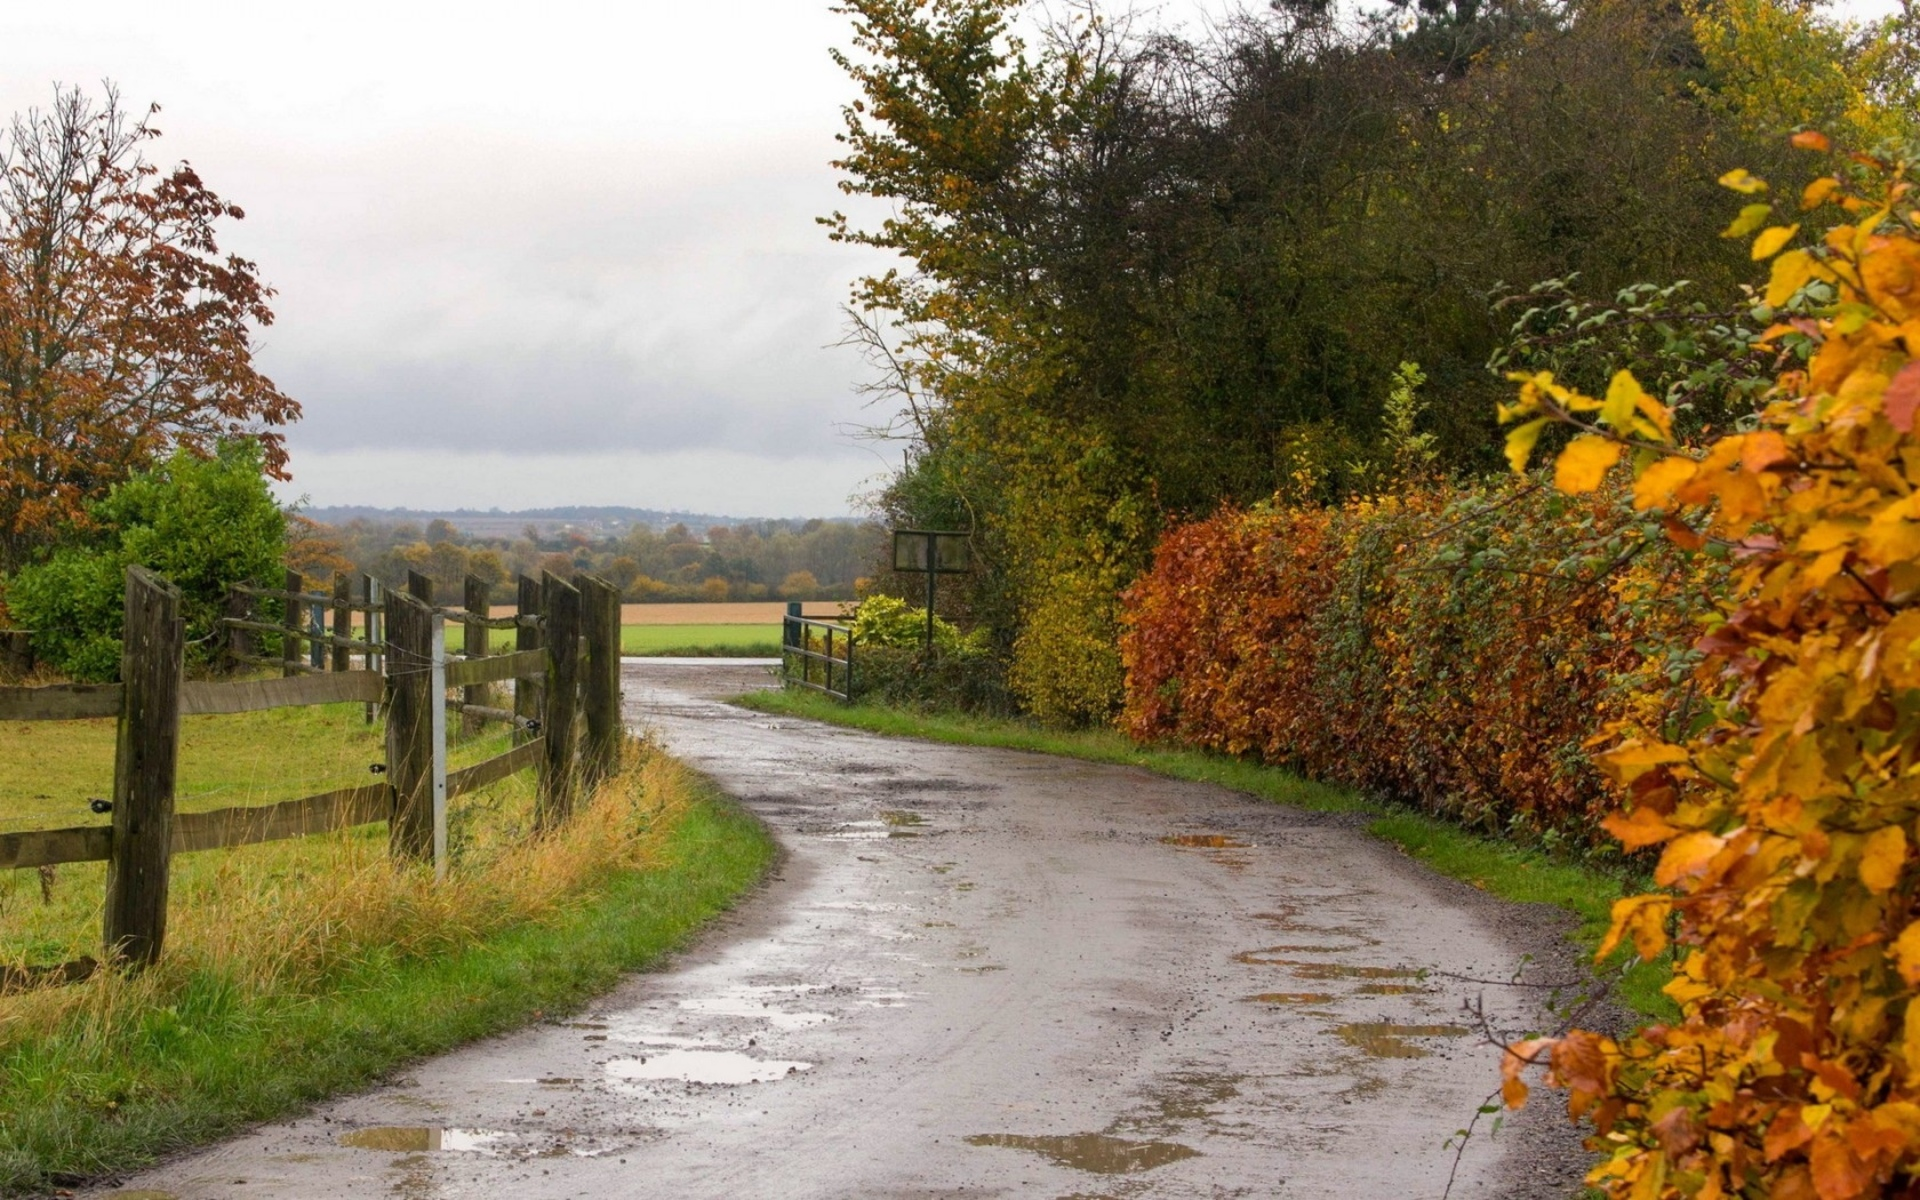 roads autumn fall rain wet water reflection fence landscapes trees